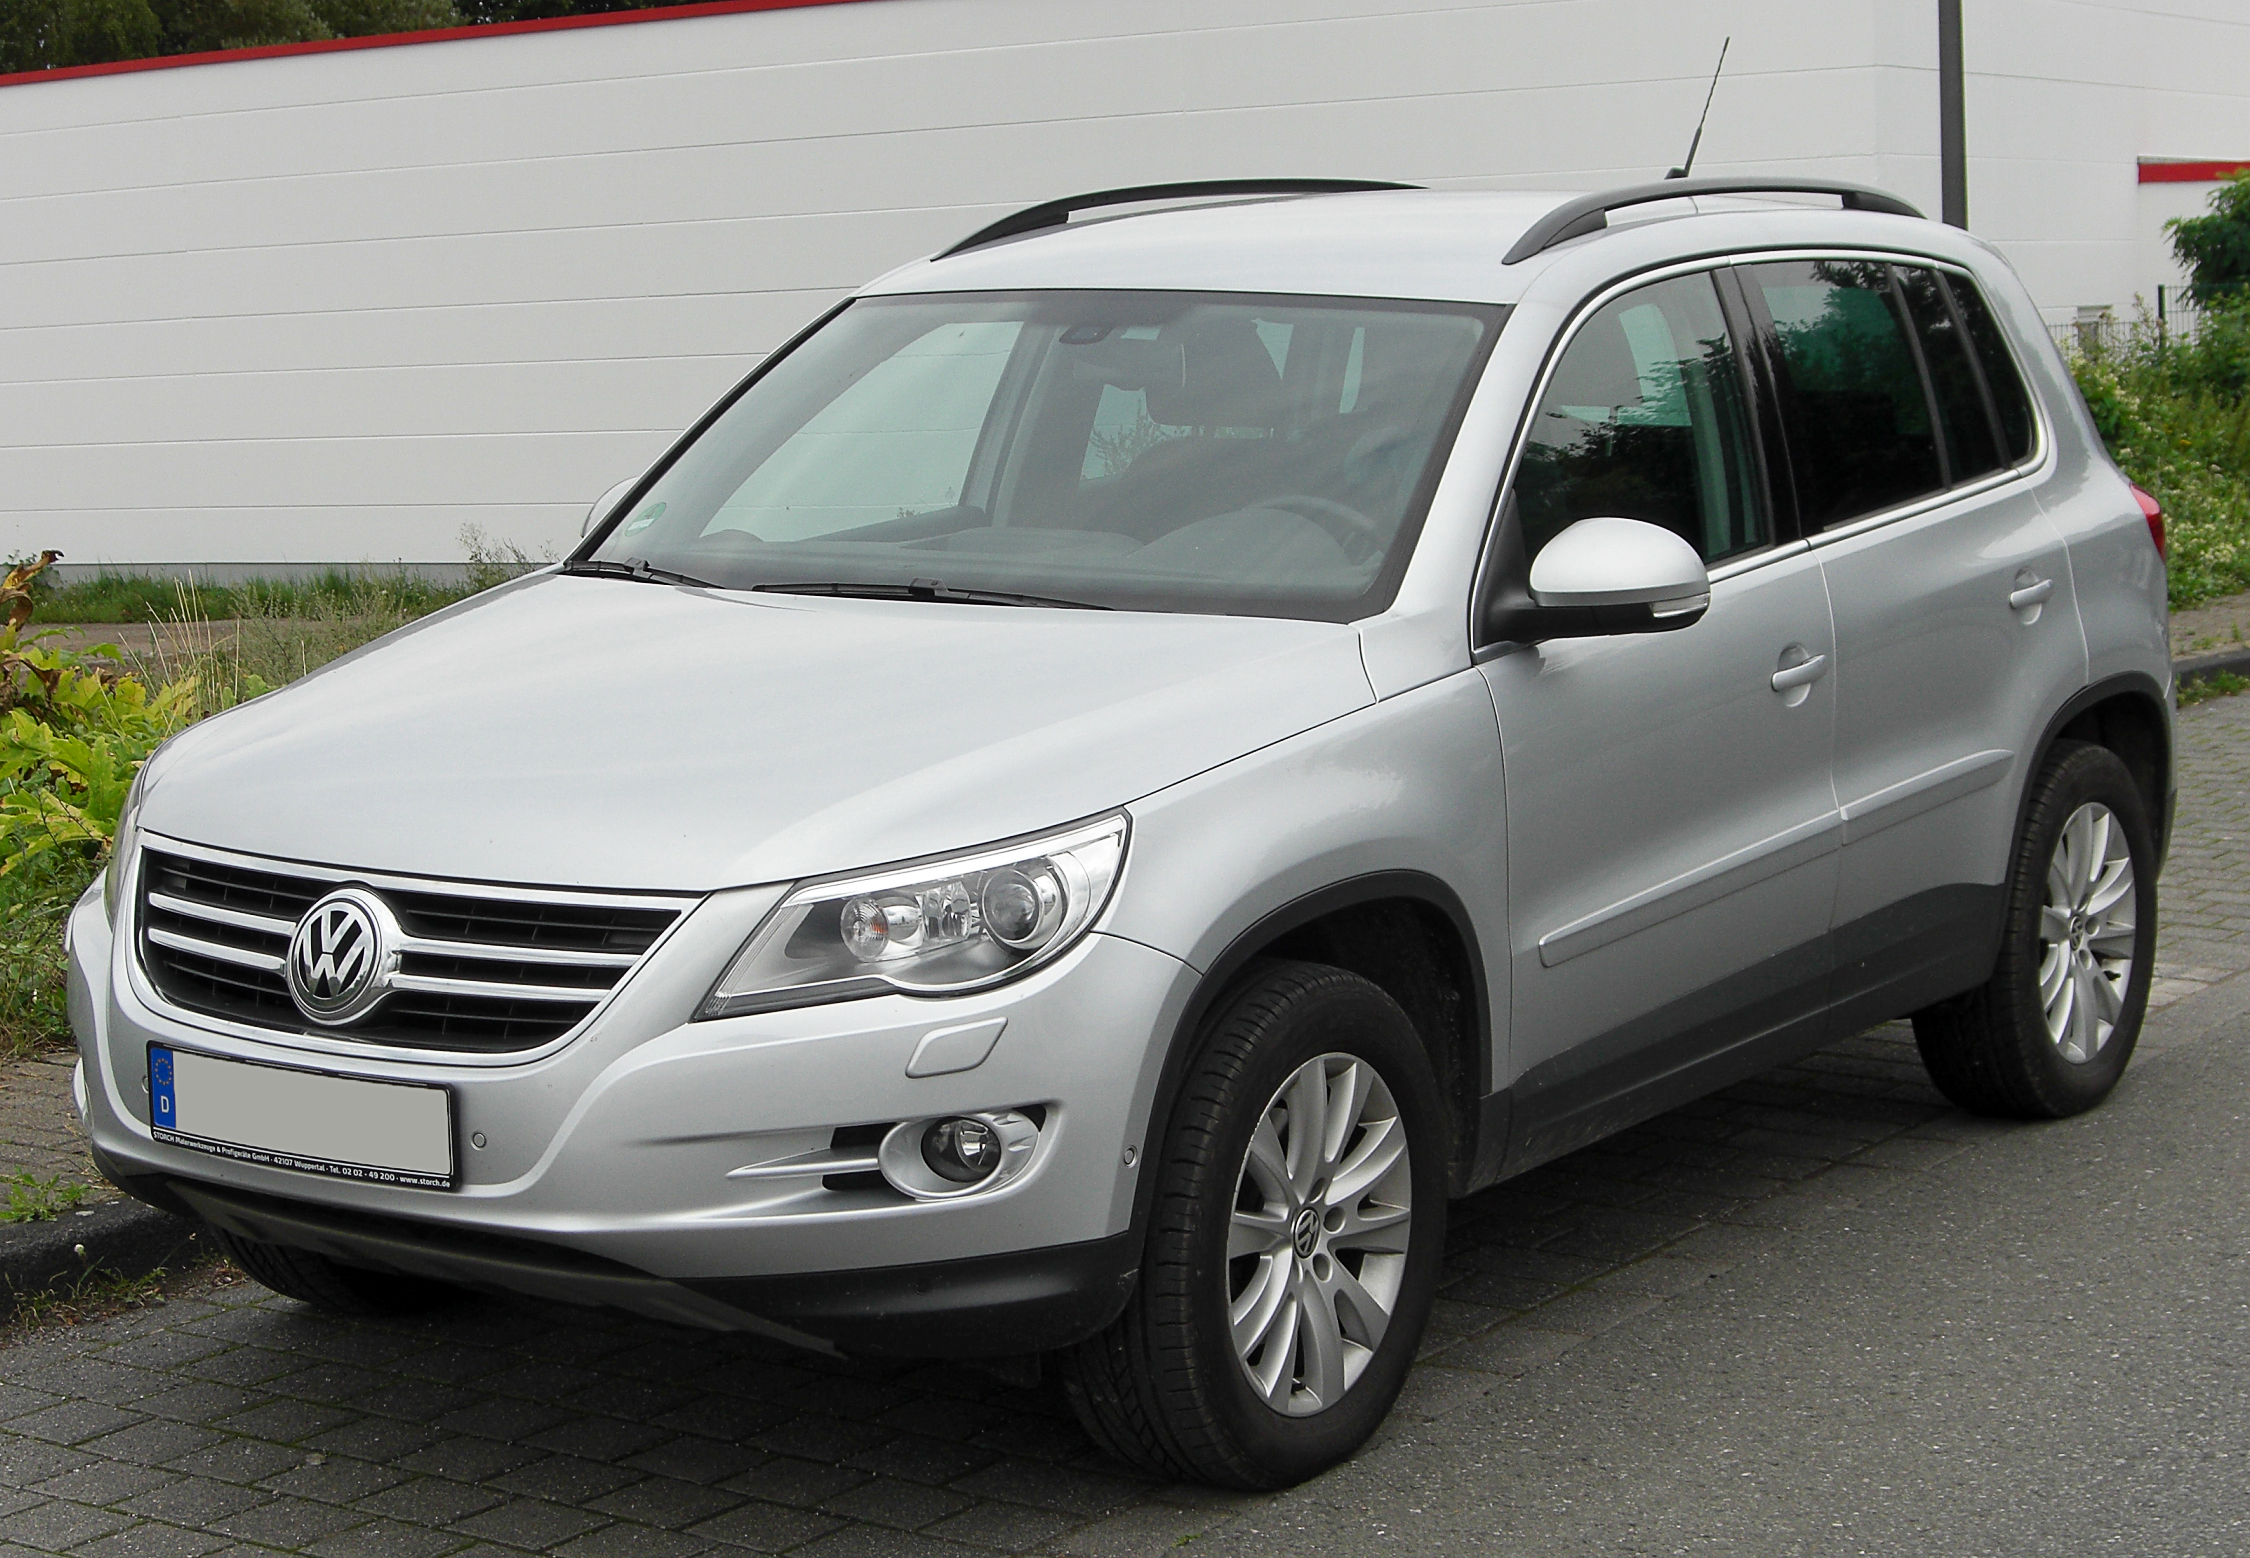 file vw tiguan 2 0 tdi front wikipedia. Black Bedroom Furniture Sets. Home Design Ideas